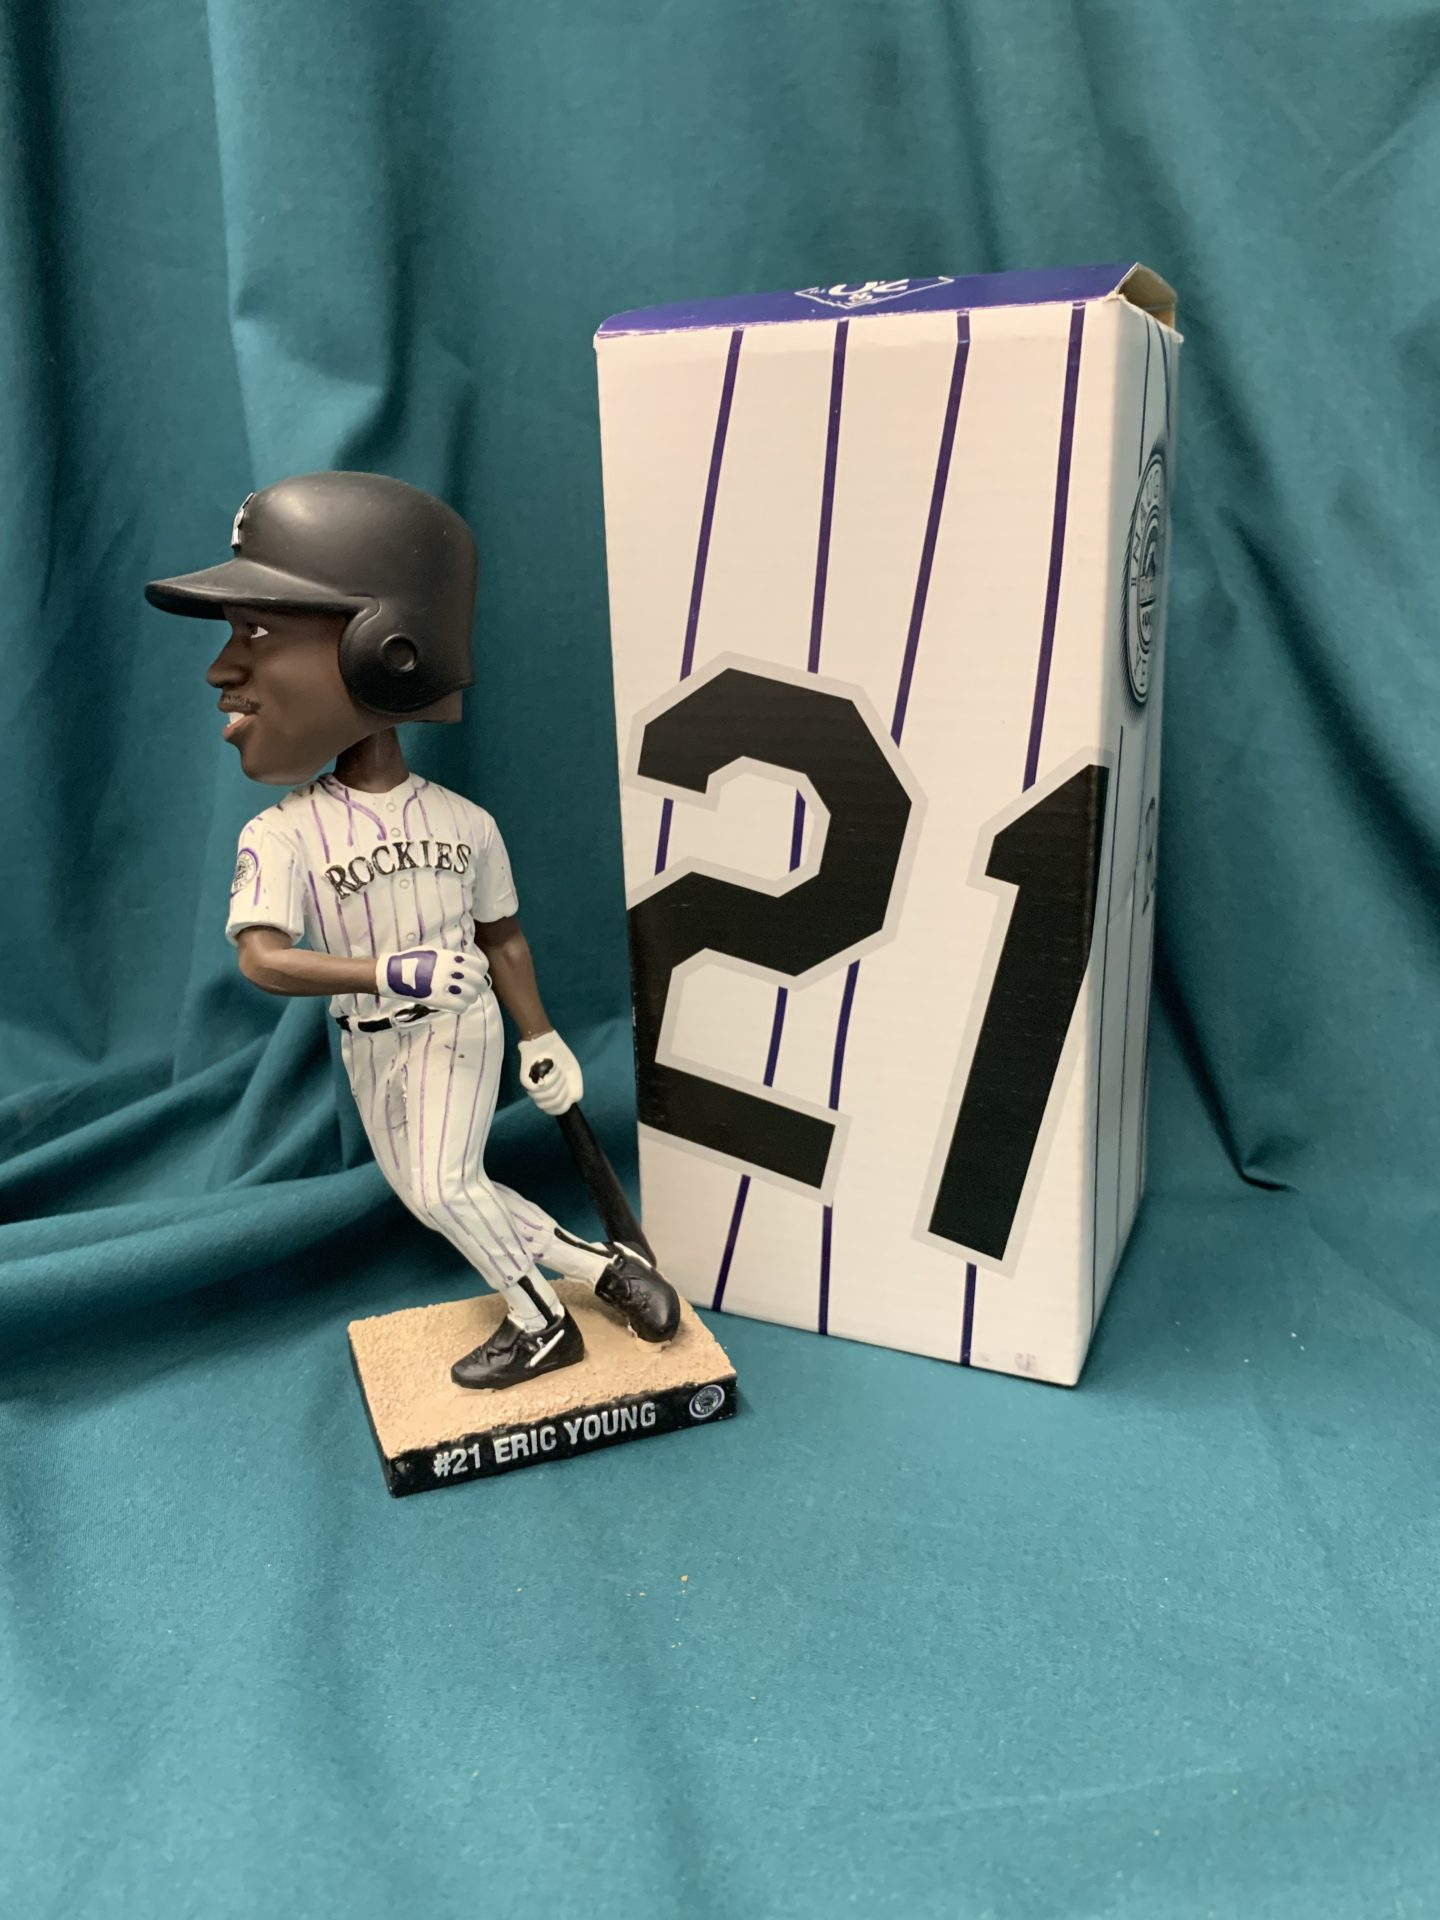 357 Eric Young Bobblehead